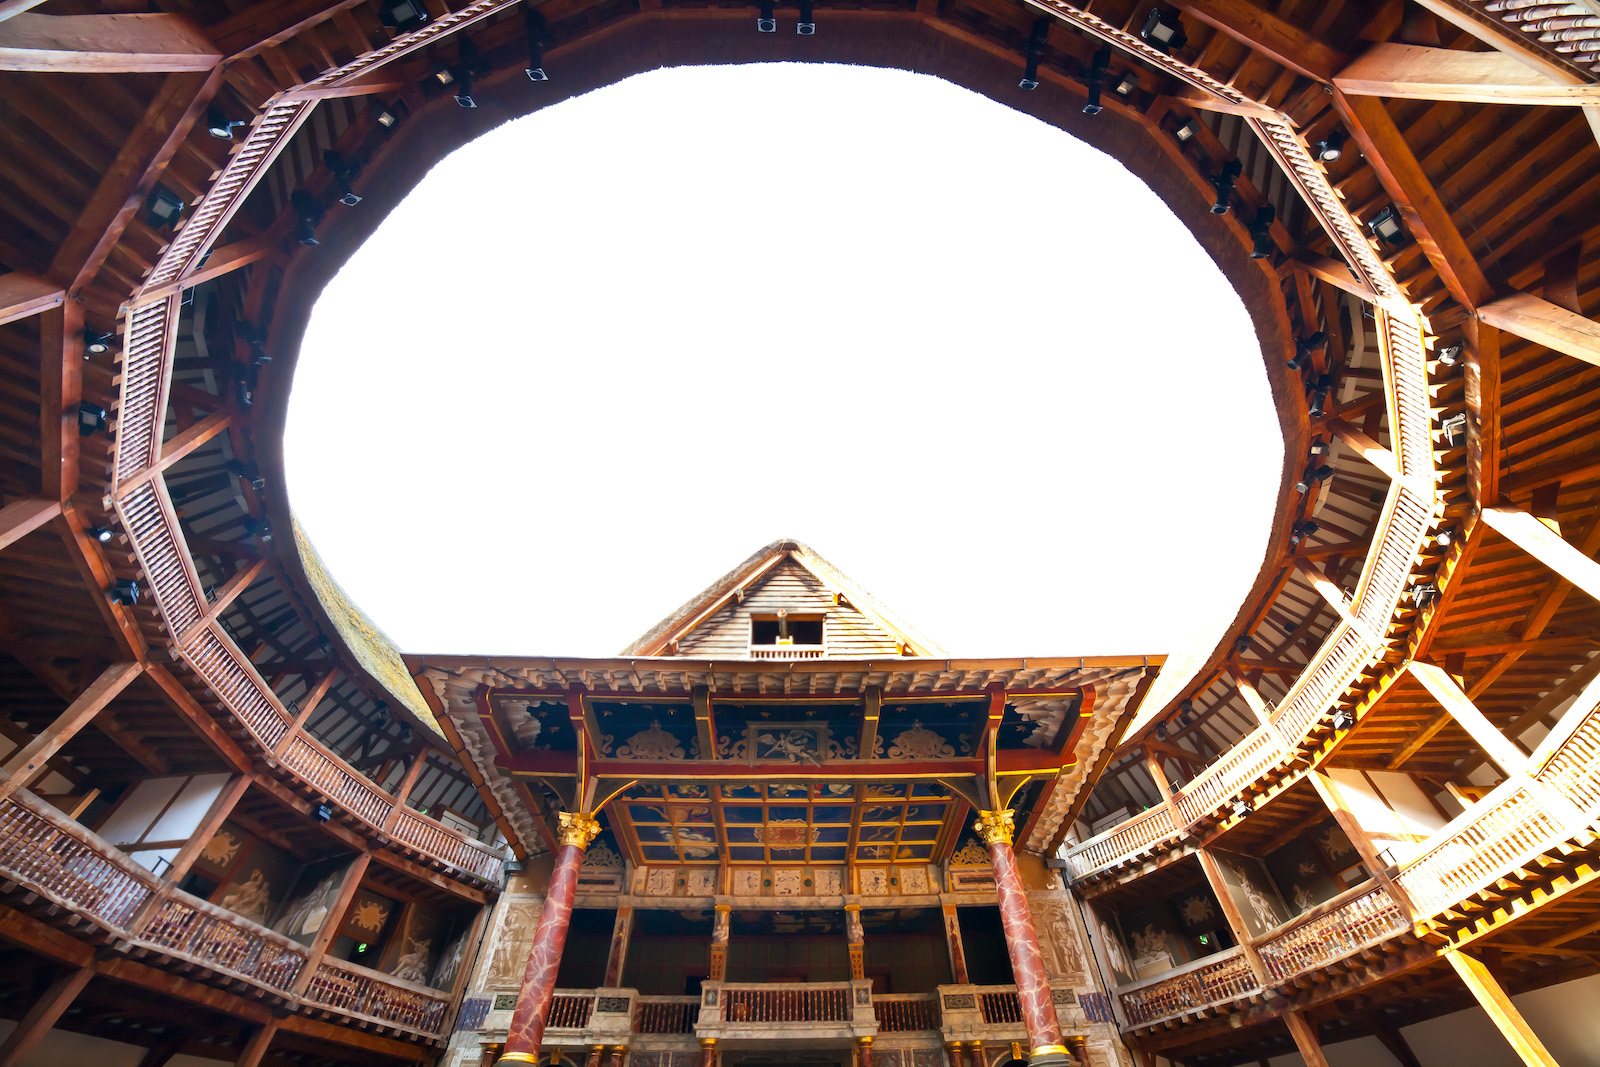 The open air Globe Theatre with its large, round ceiling opening